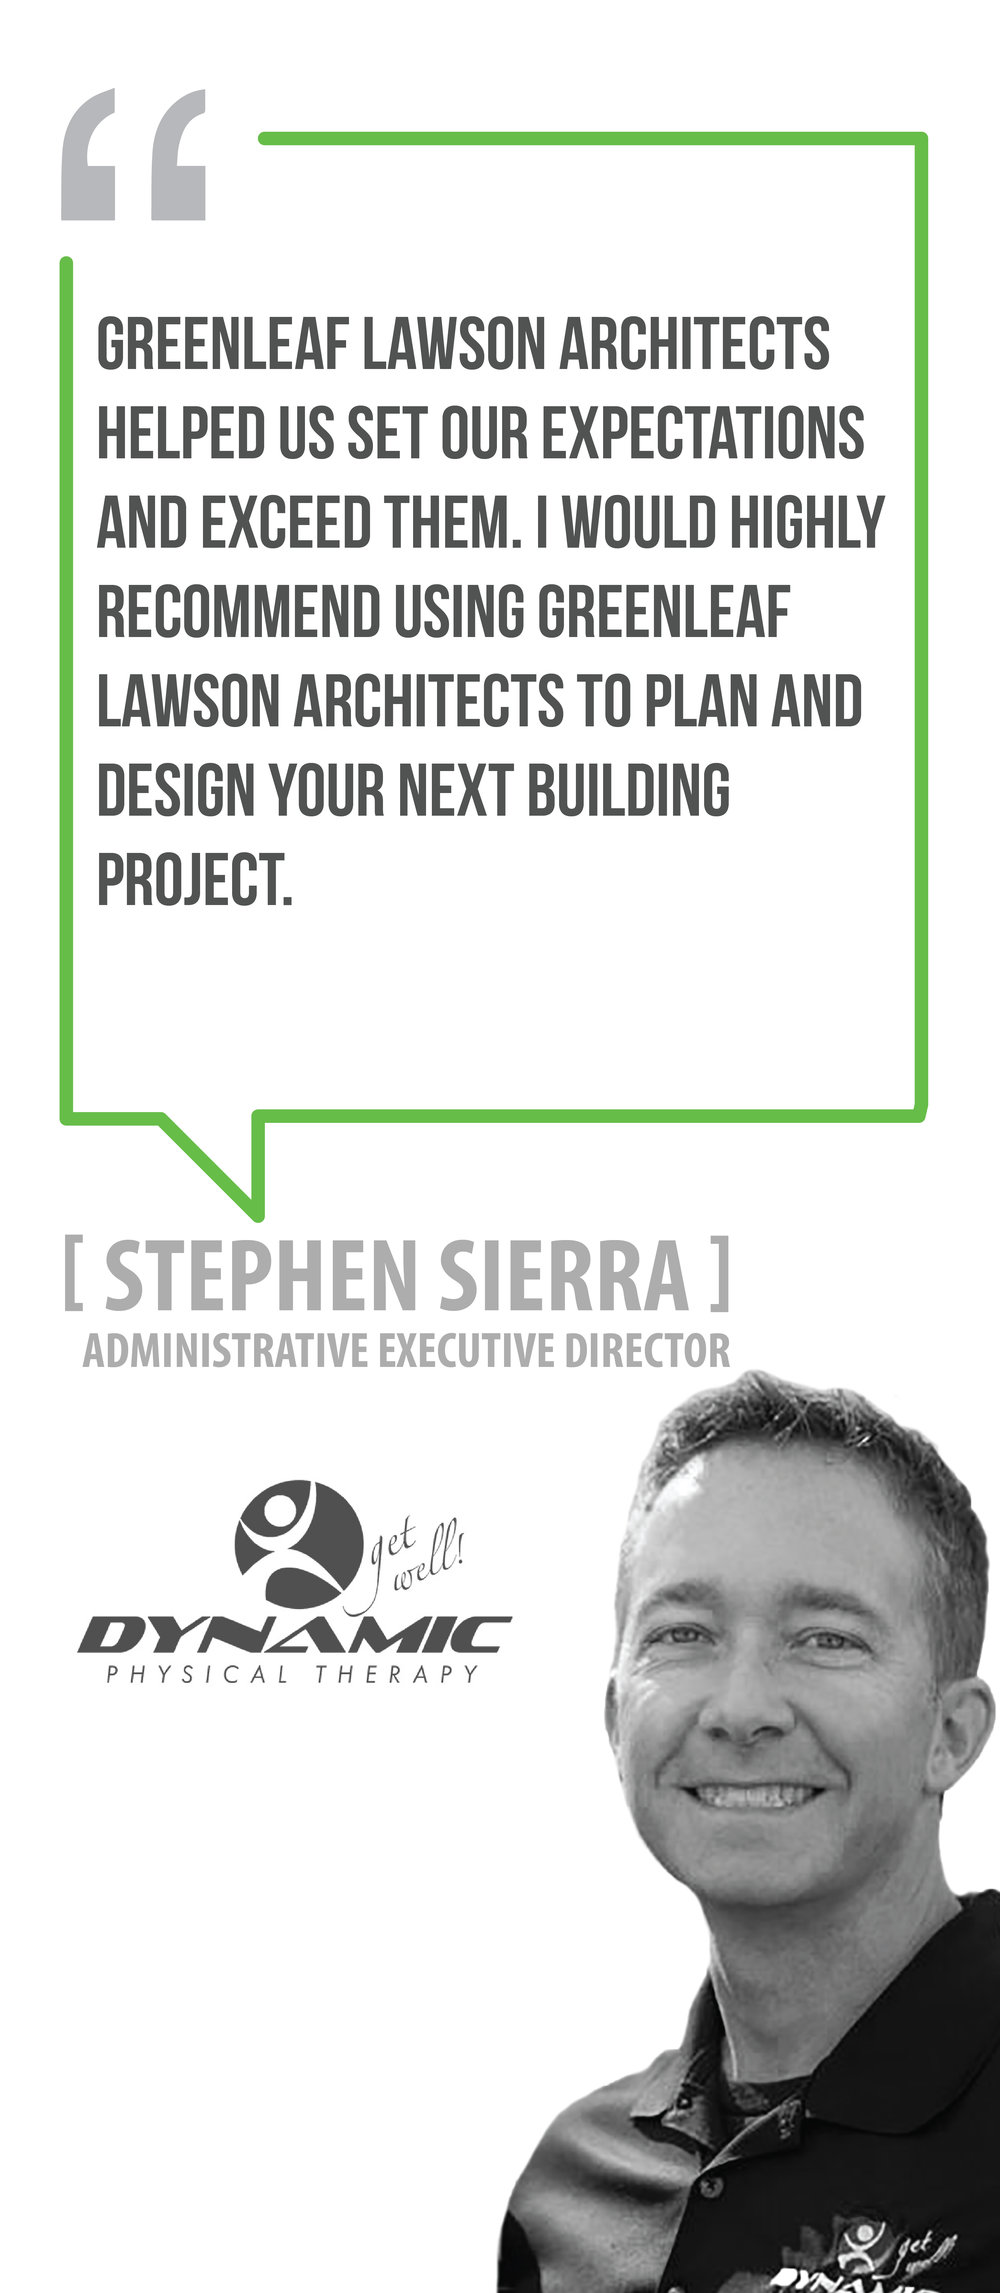 Greenleaf_Lawson_Architects-Testimonials-Vertical-03.jpg